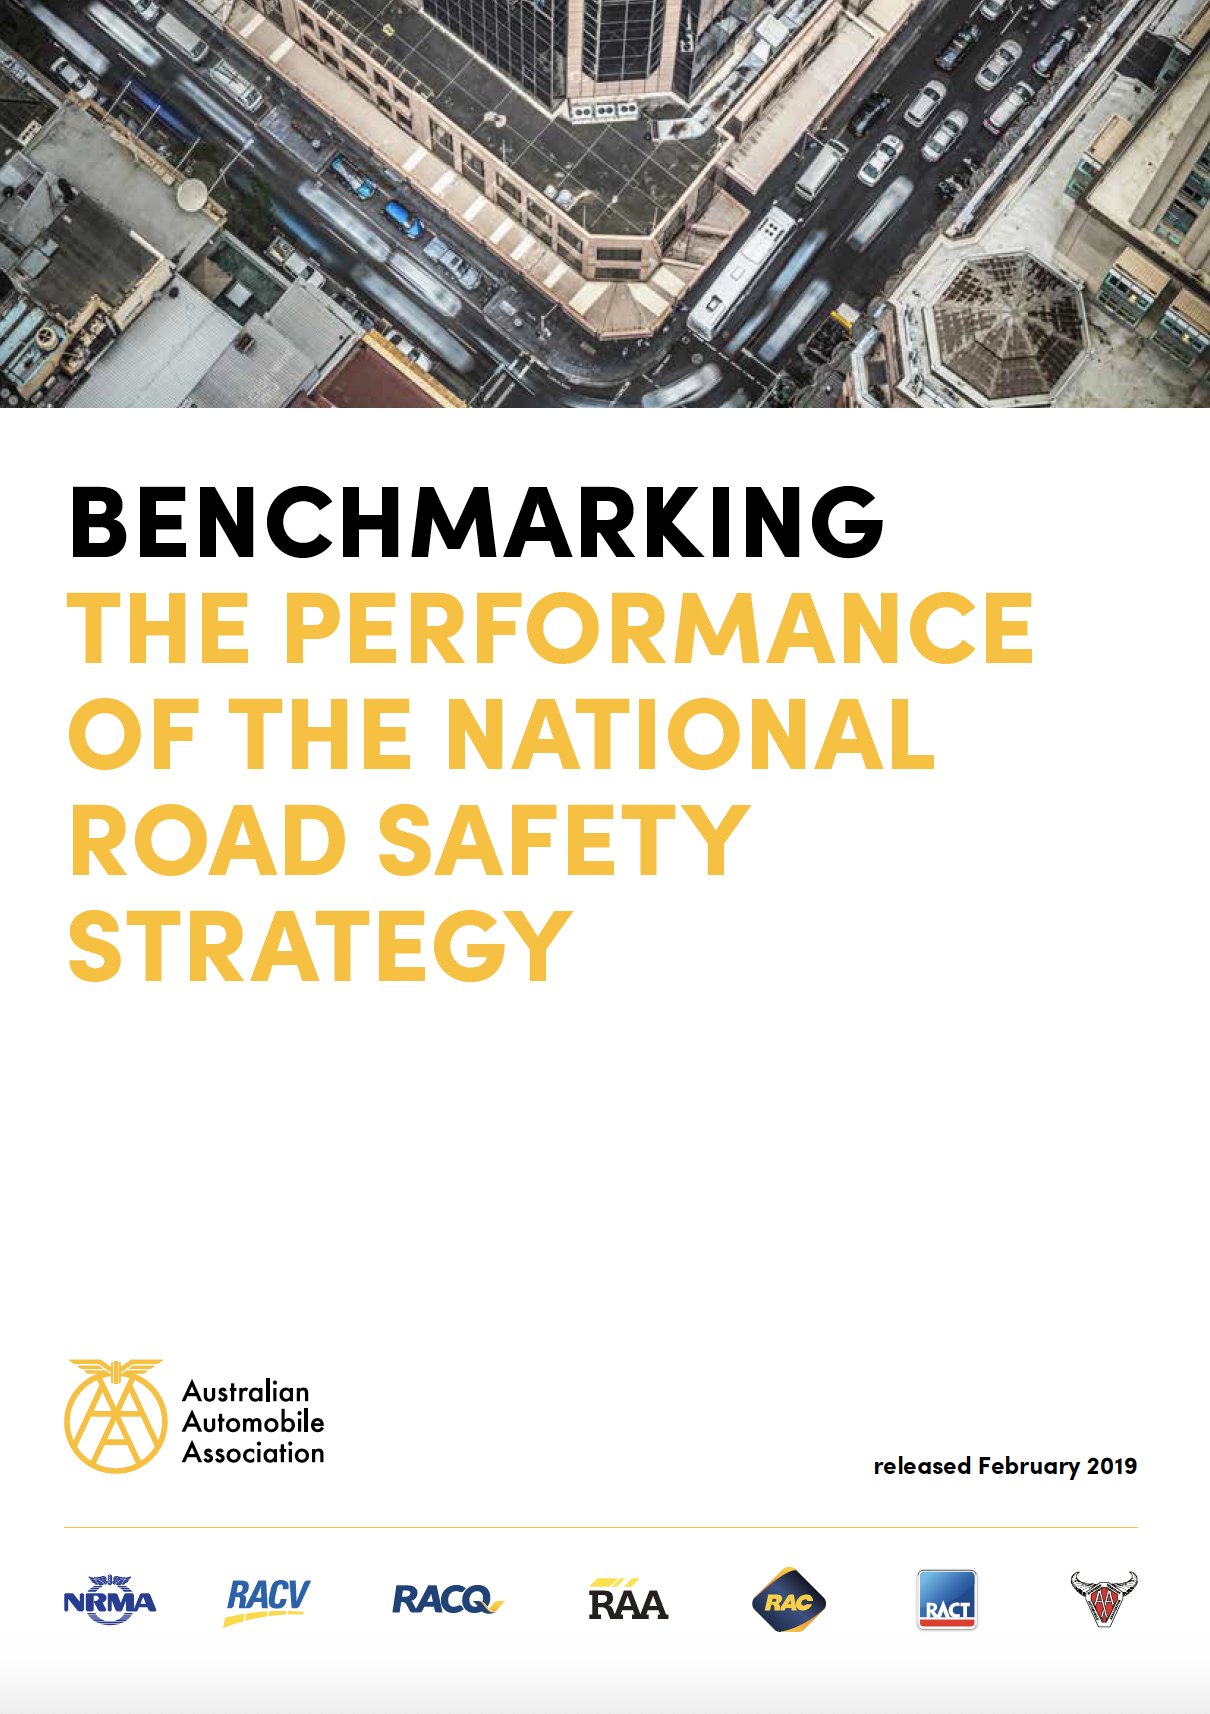 Australian Automotive Association Report, February 2019